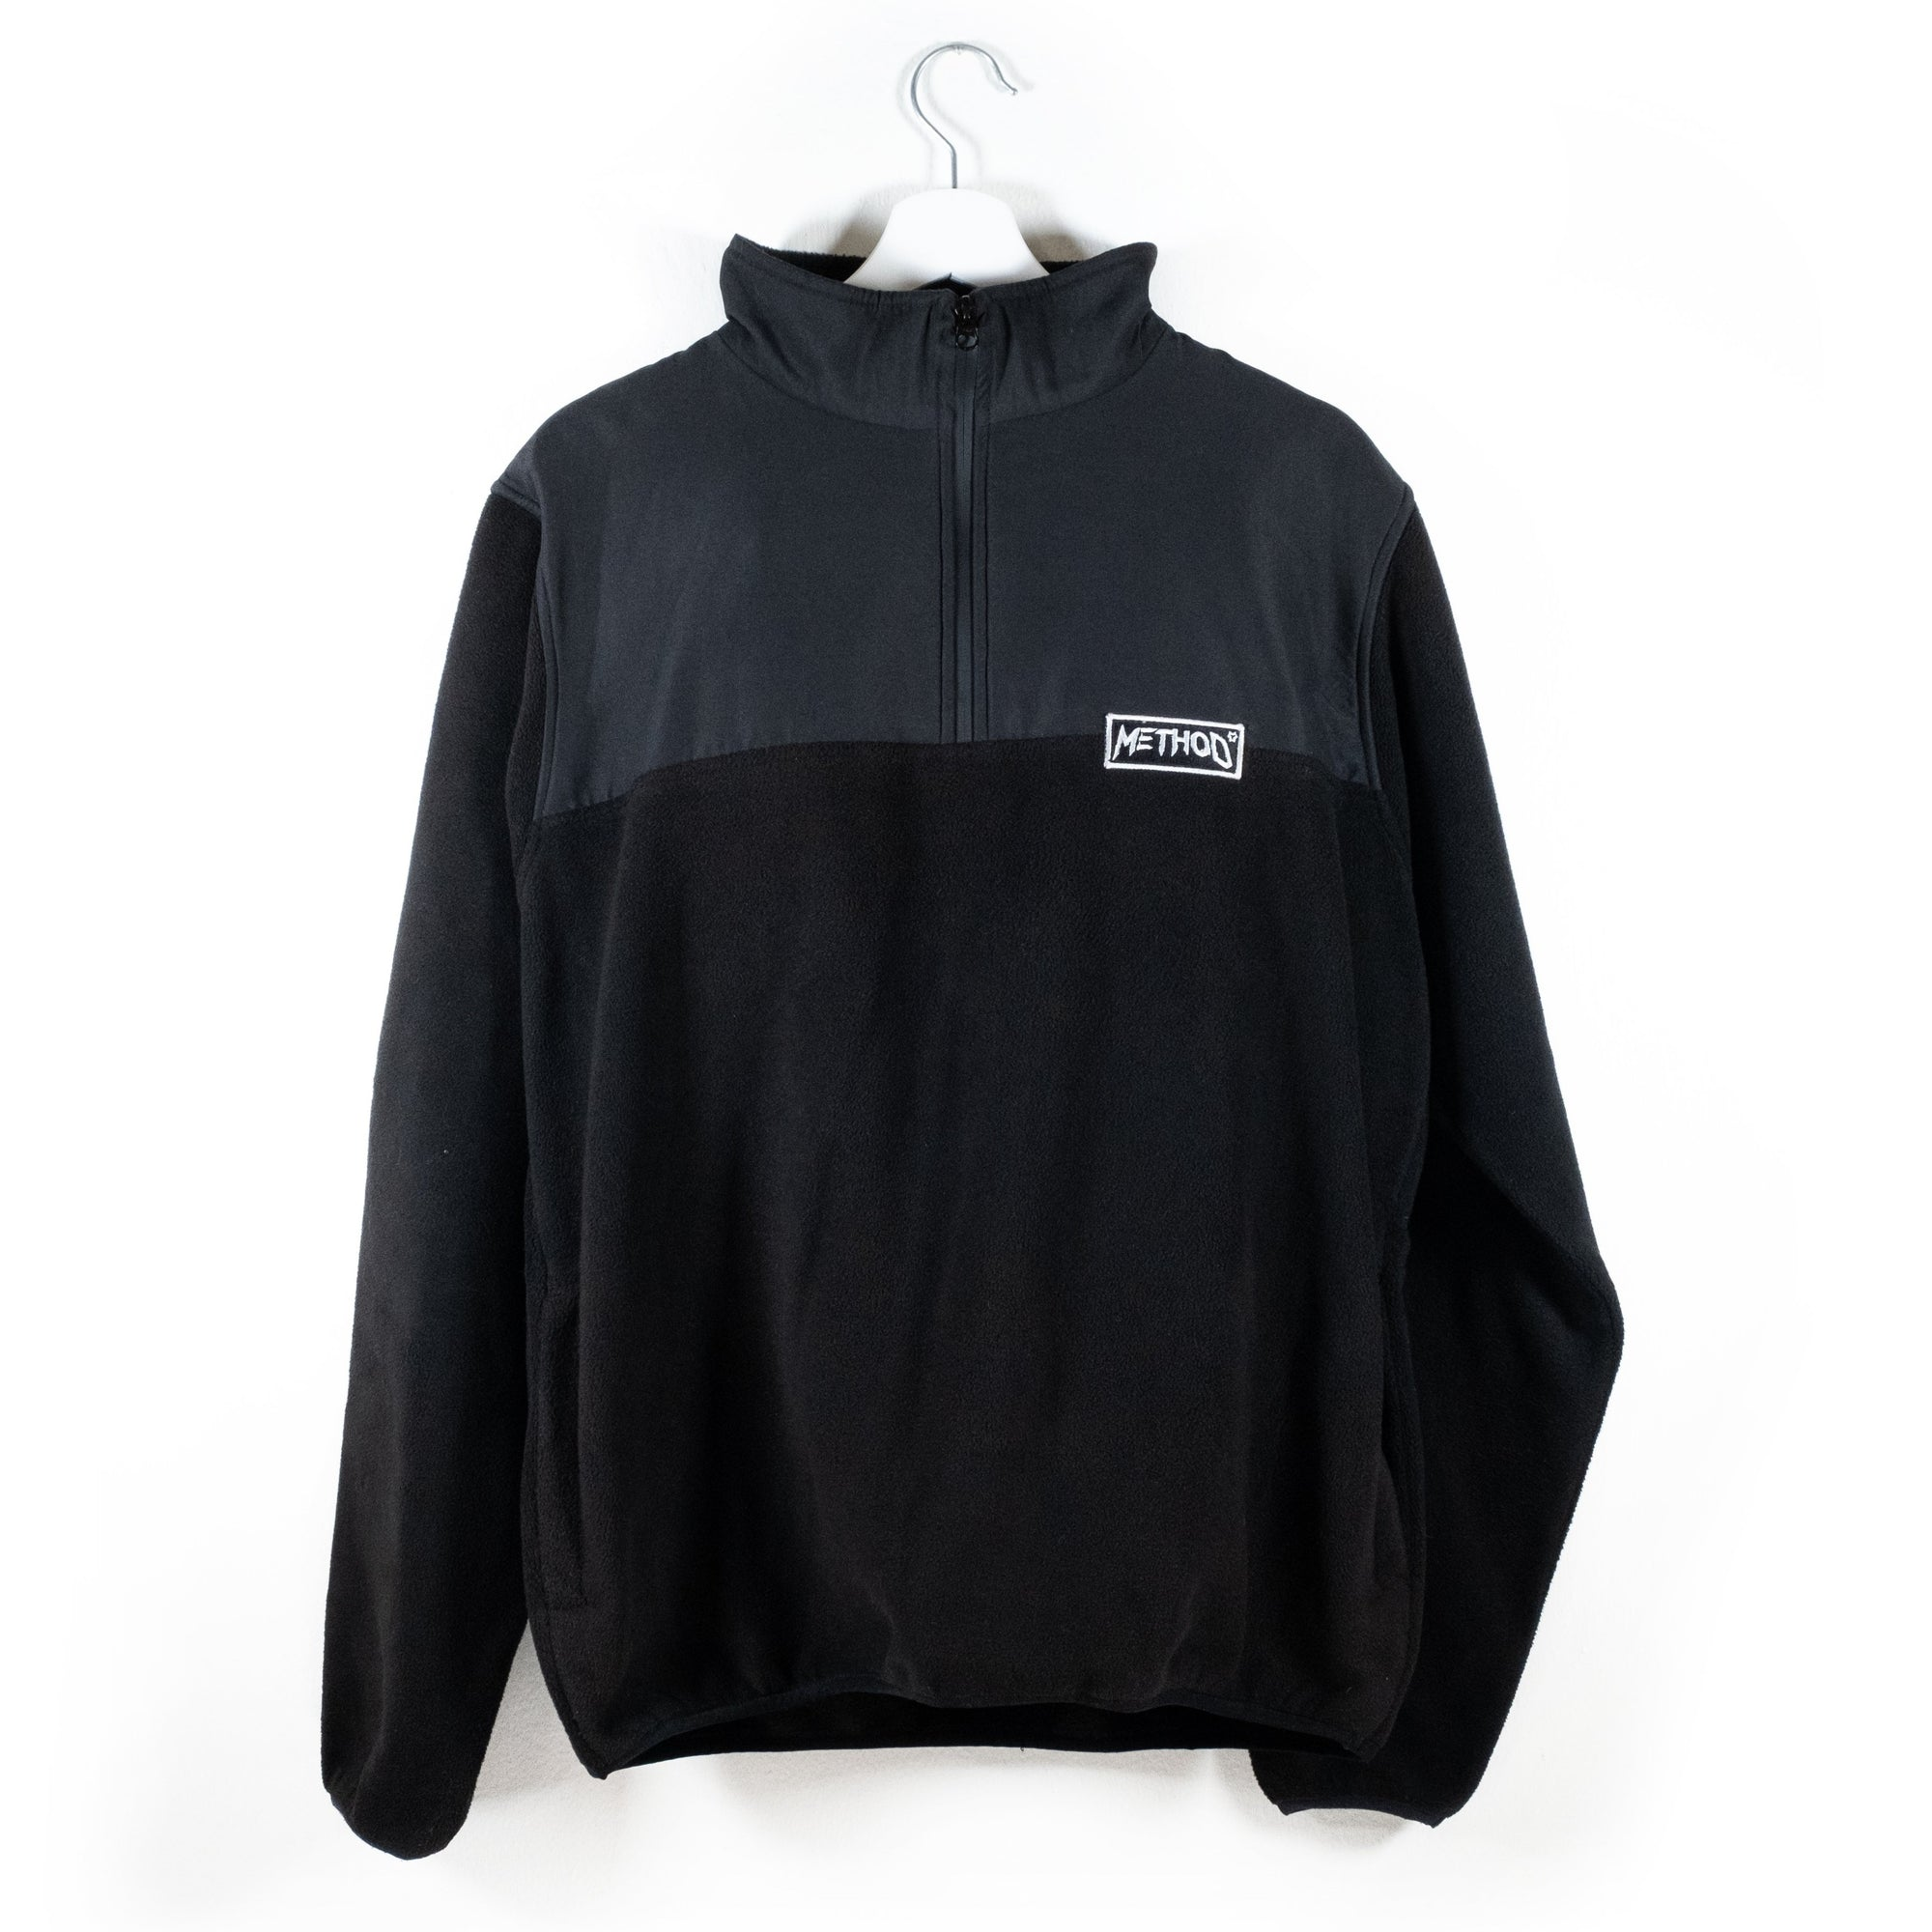 Method Midweight Fleece